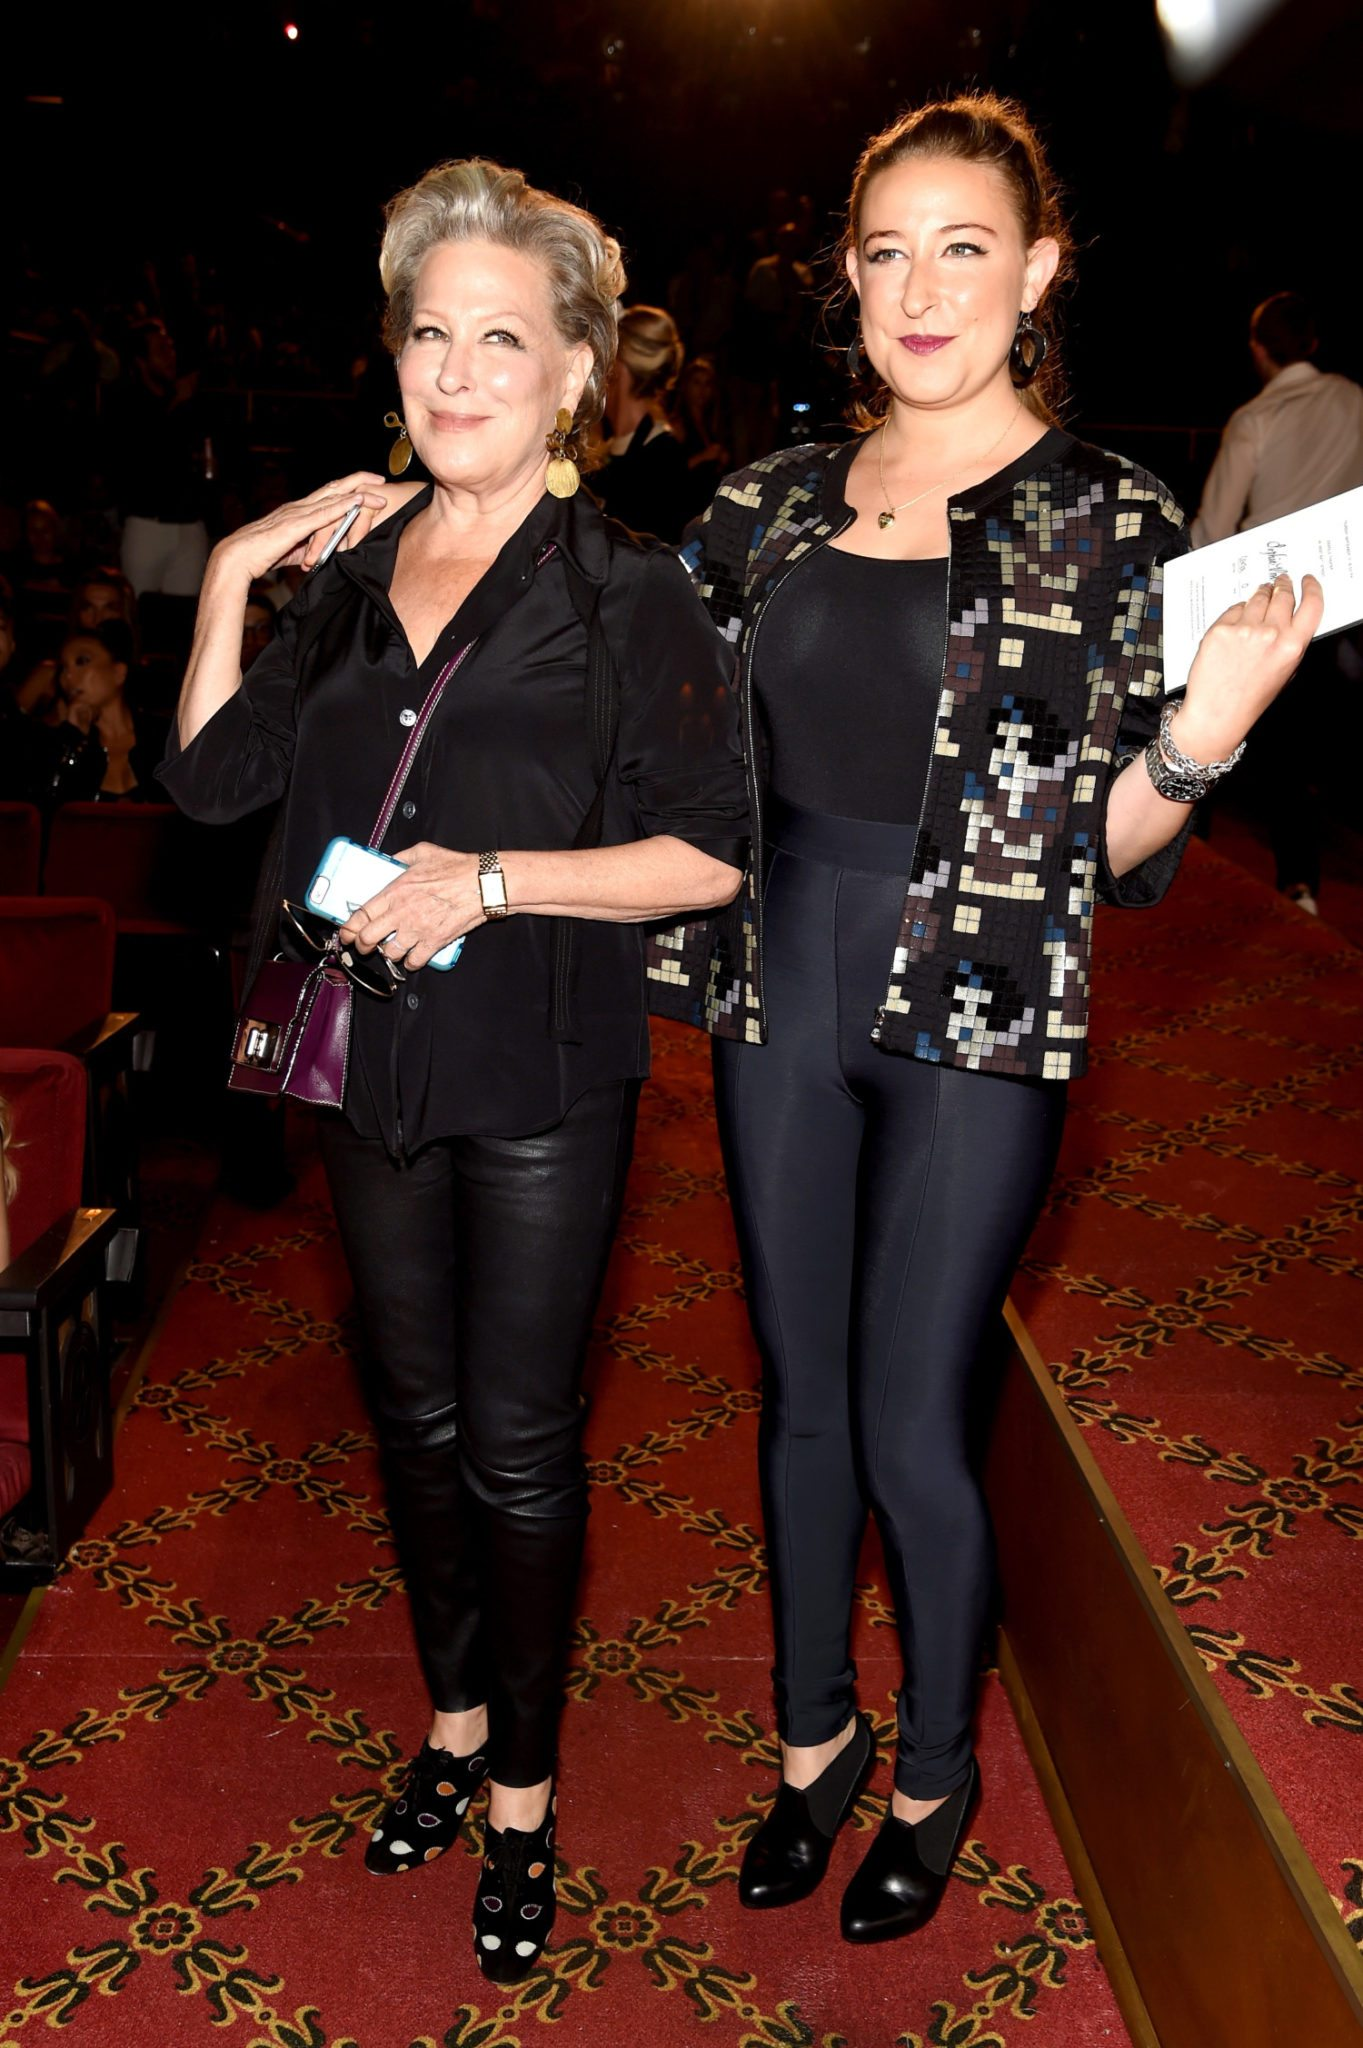 NEW YORK, NY - SEPTEMBER 17: Bette Midler and daughter Sophie von Haselberg attend the Marc Jacobs Spring 2016 fashion show during New York Fashion Week at Ziegfeld Theater on September 17, 2015 in New York City. (Photo by Jamie McCarthy/Getty Images for Marc Jacobs)